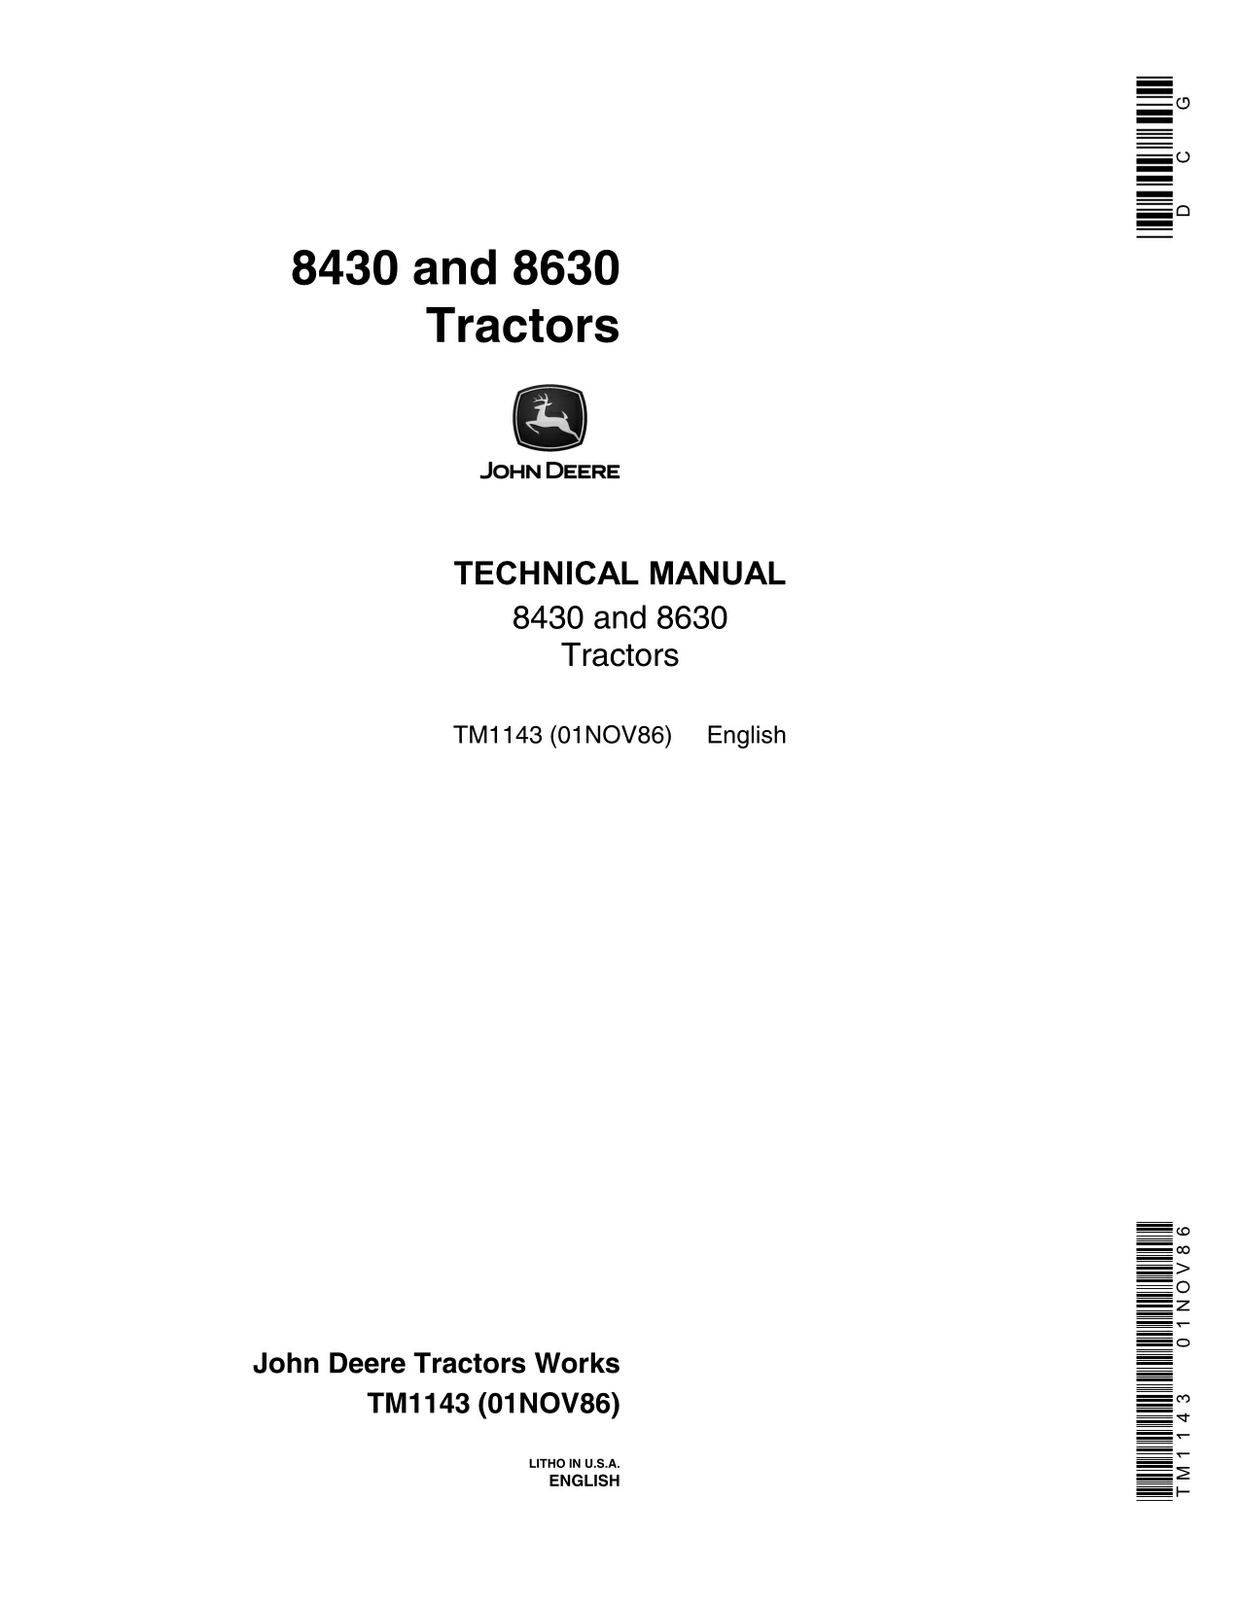 John Deere 8430 8630 - technical manual 1986 - TM1143 - 826 pages - english